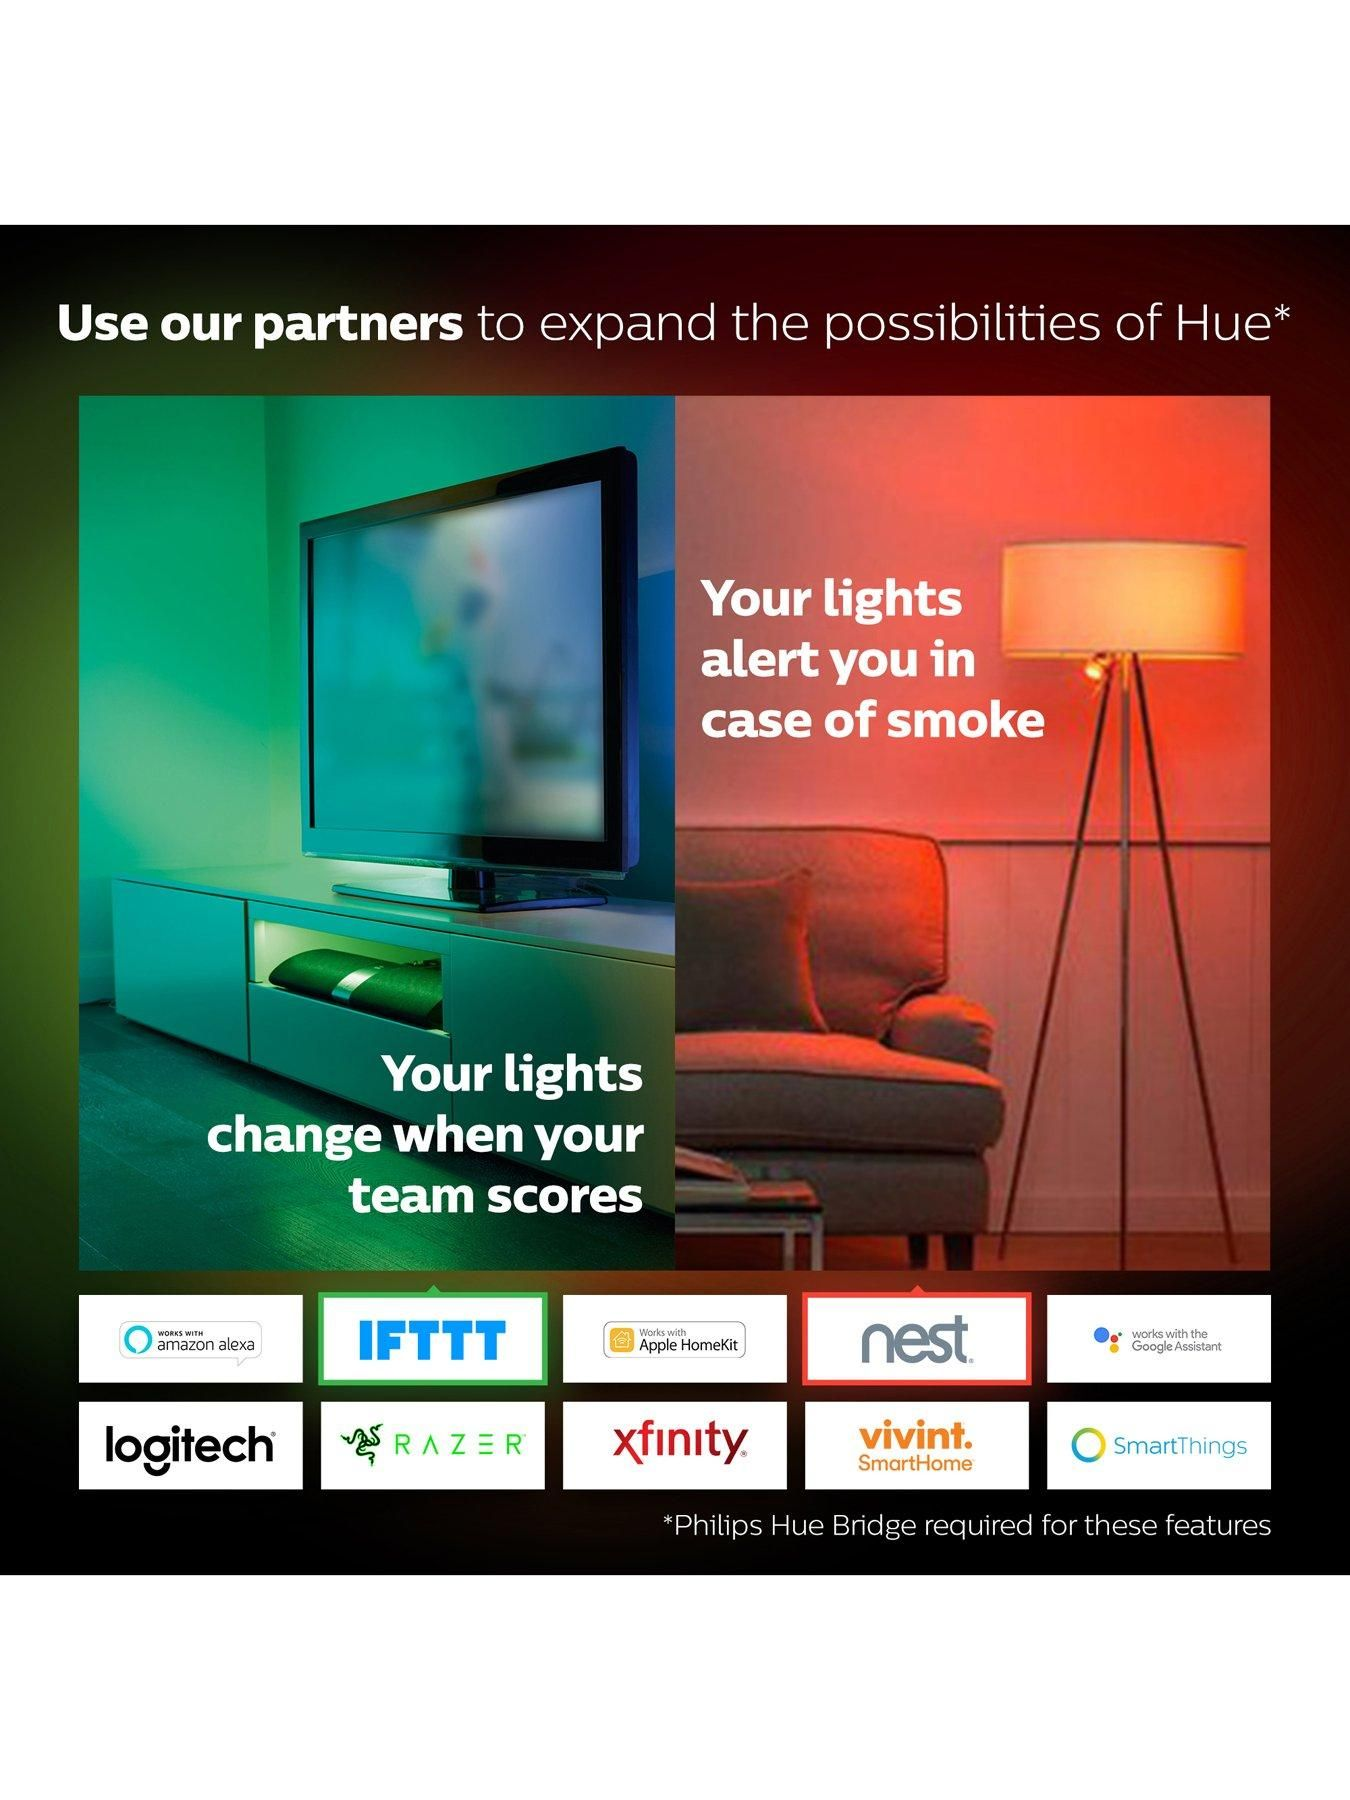 Very Womens Mens And Kids Fashion Furniture Electricals More In 2021 Hue Philips Philips Hue Bridge Led Smart Bulb